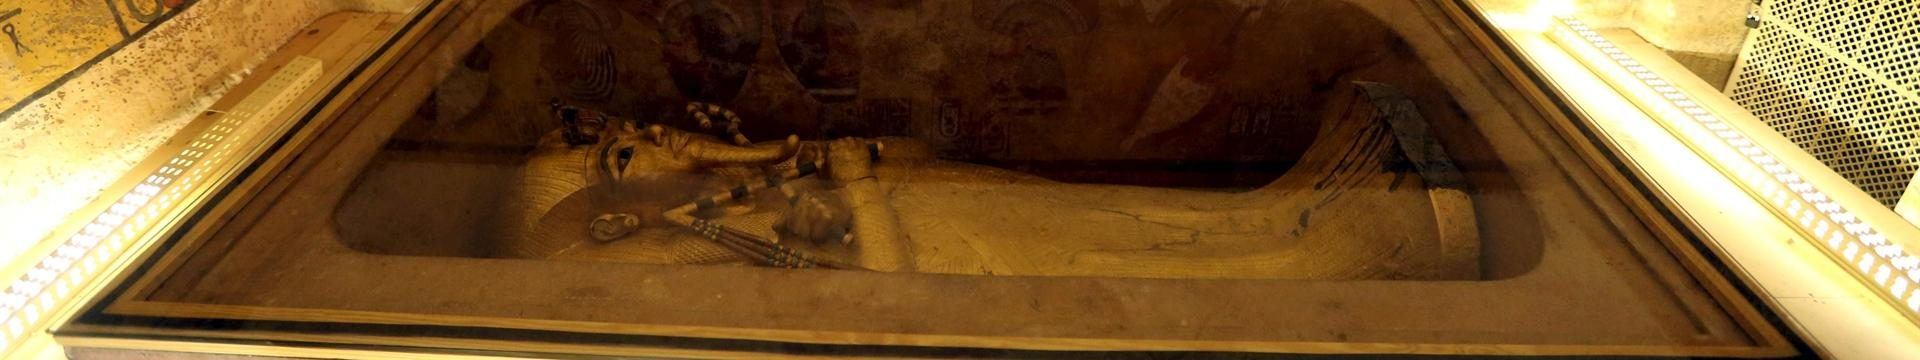 King Tutankhamun Tomb - Valley of the Kings - Egypt Tours Portal